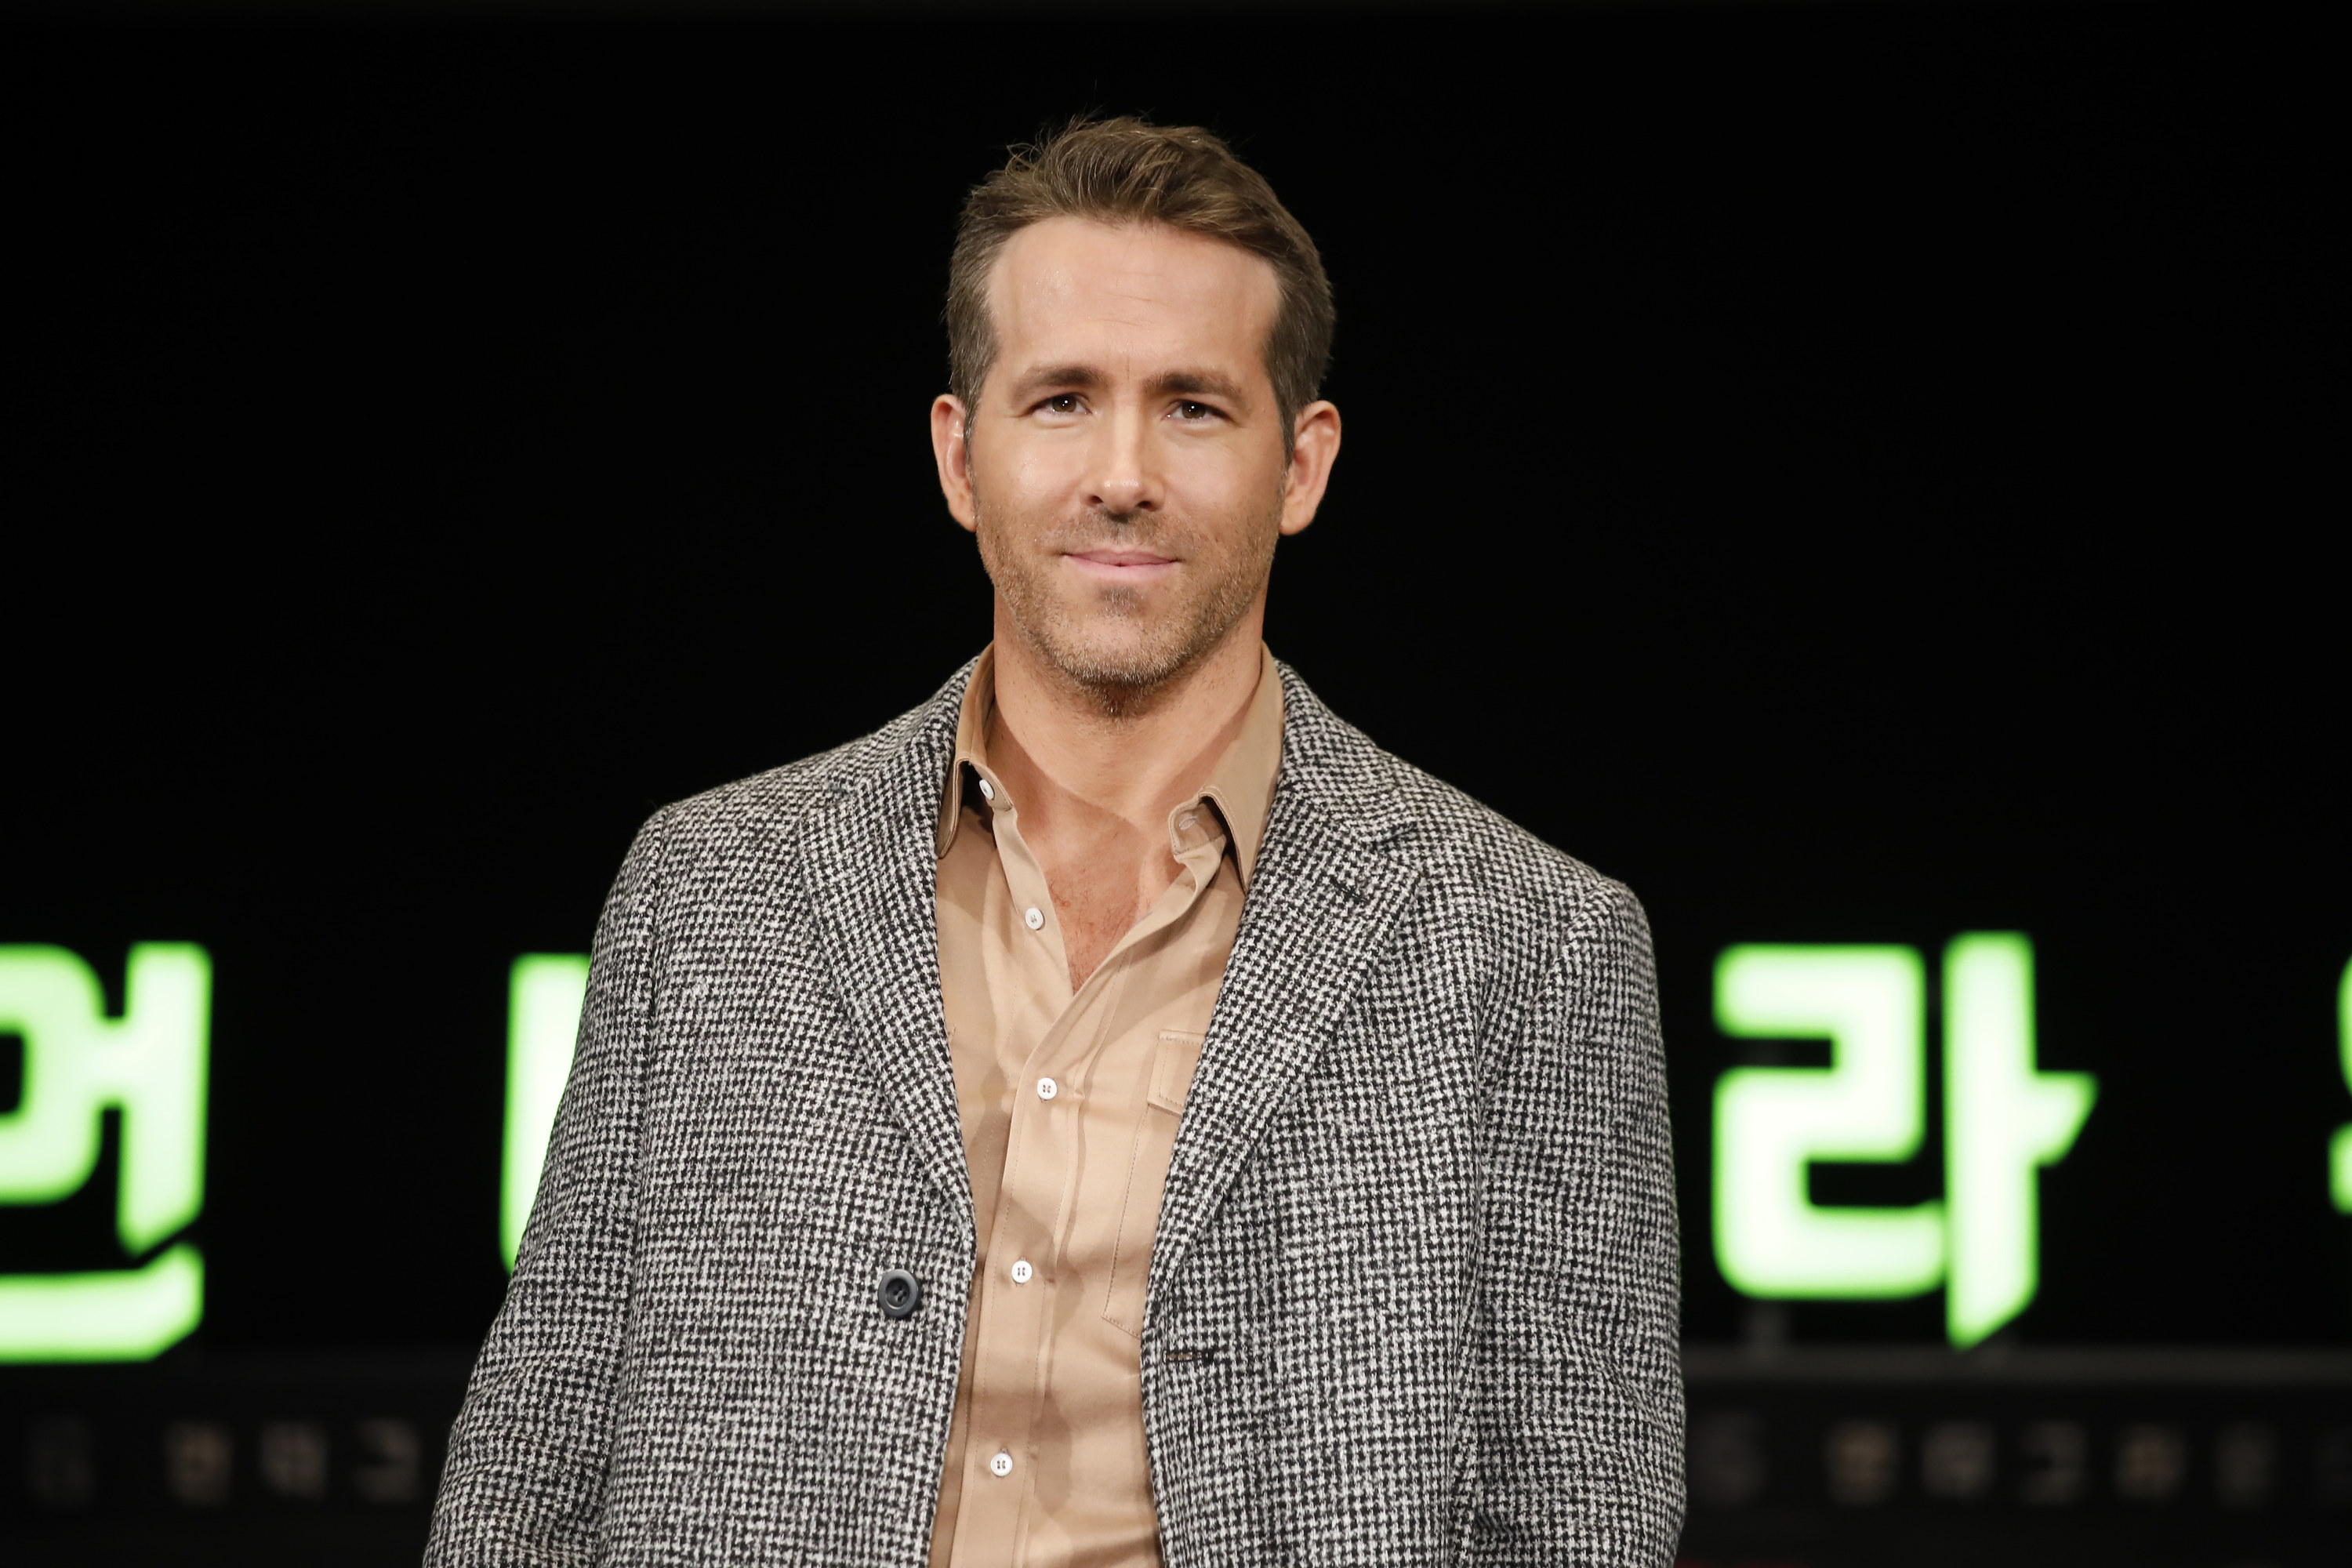 Ryan Reynolds attends the press conference for the world premiere of Netflix's '6 Underground' at Four Seasons Hotel on December 02, 2019 in Seoul, South Korea